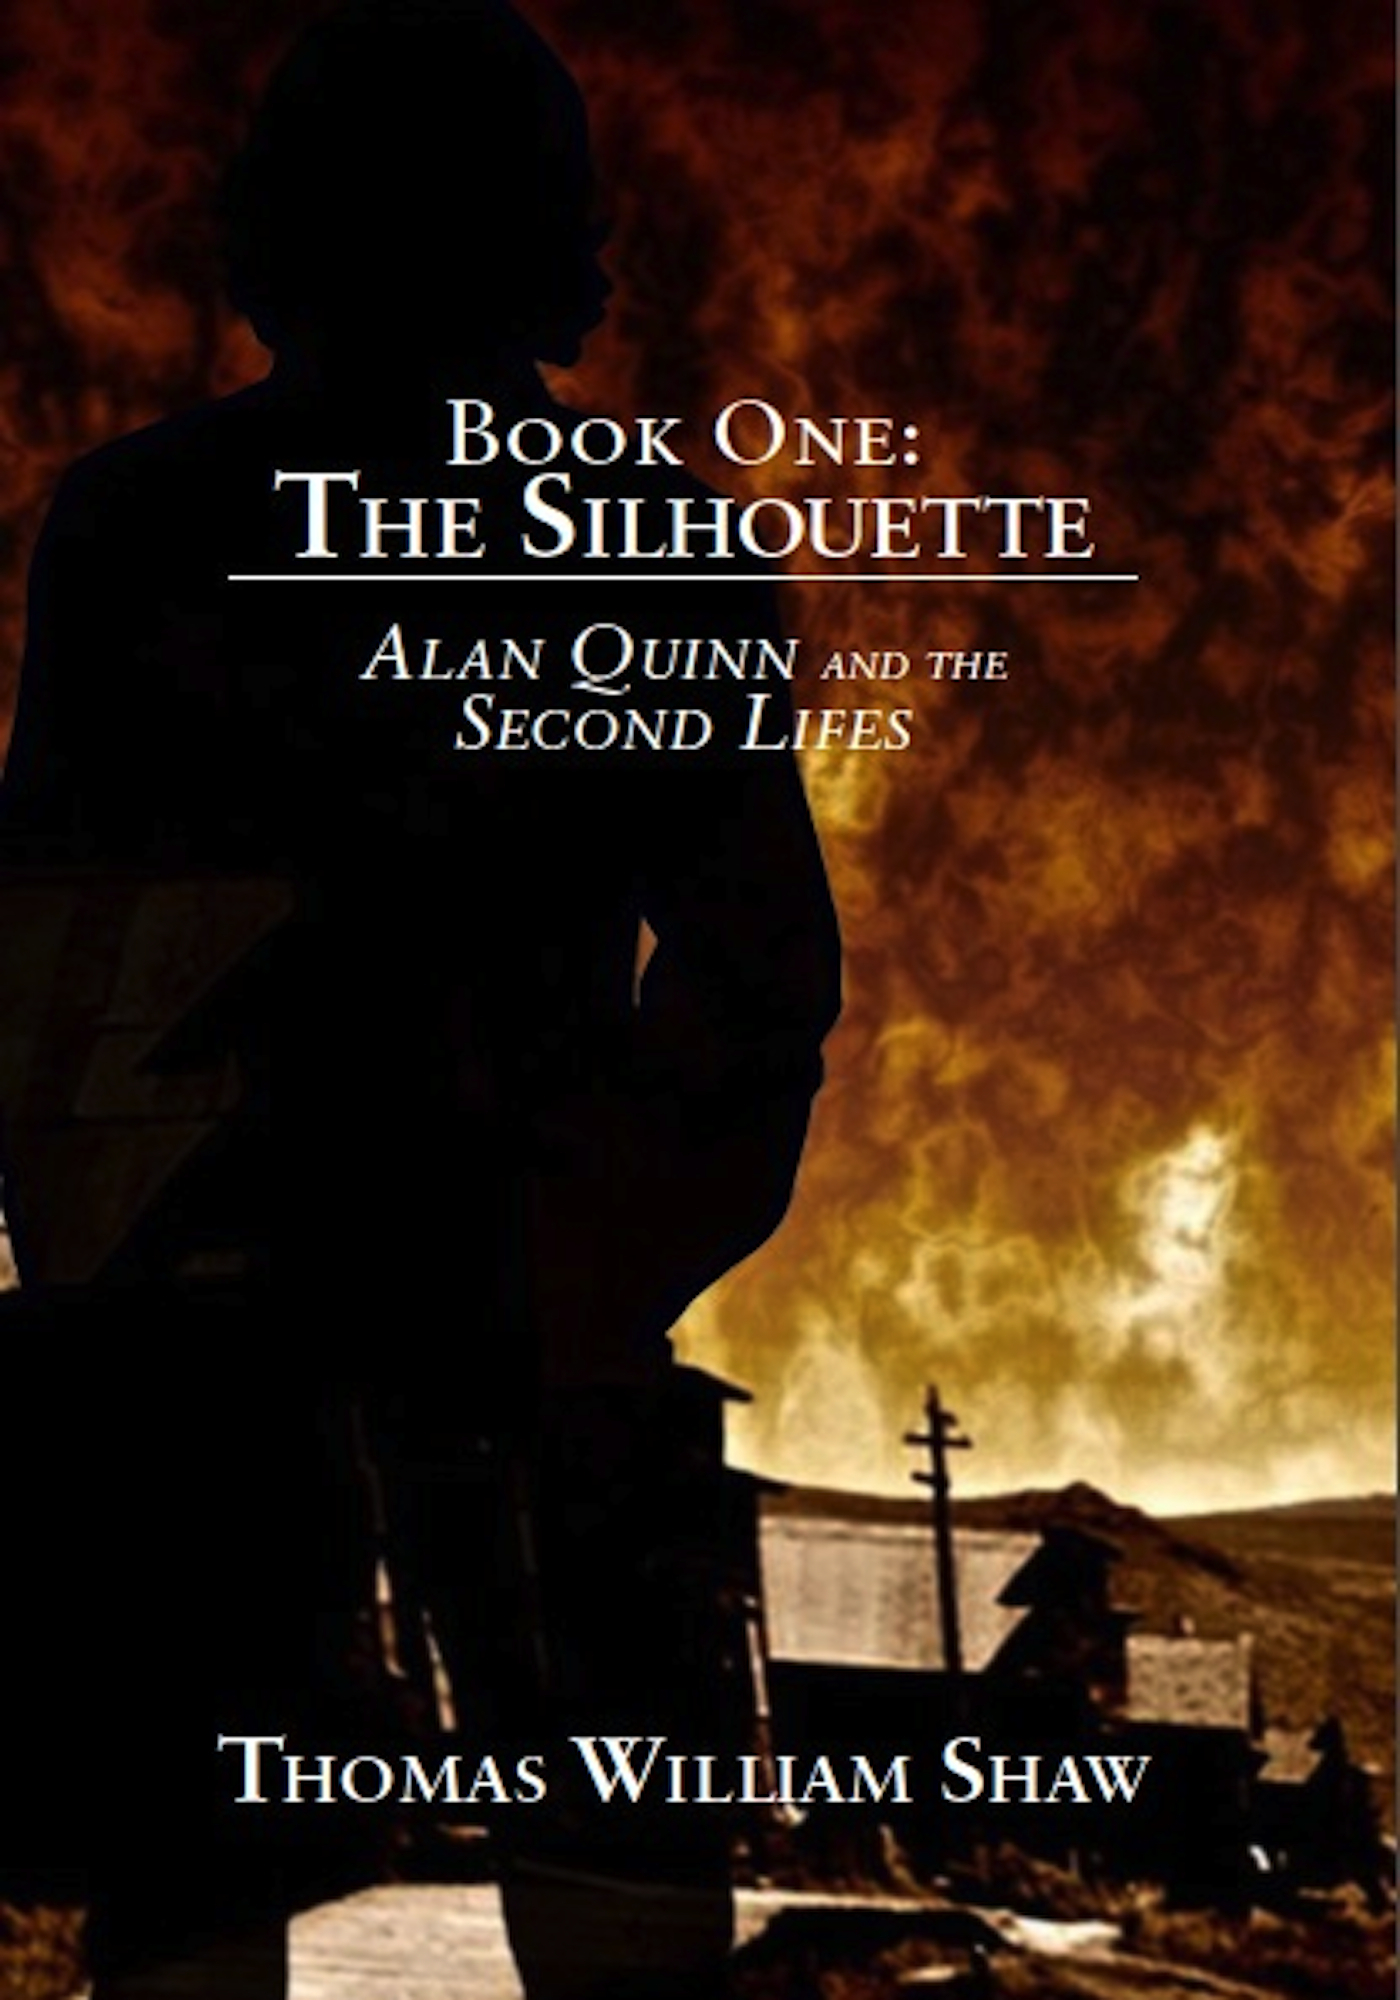 The Silhouette (Alan Quinn and the Second Lifes)